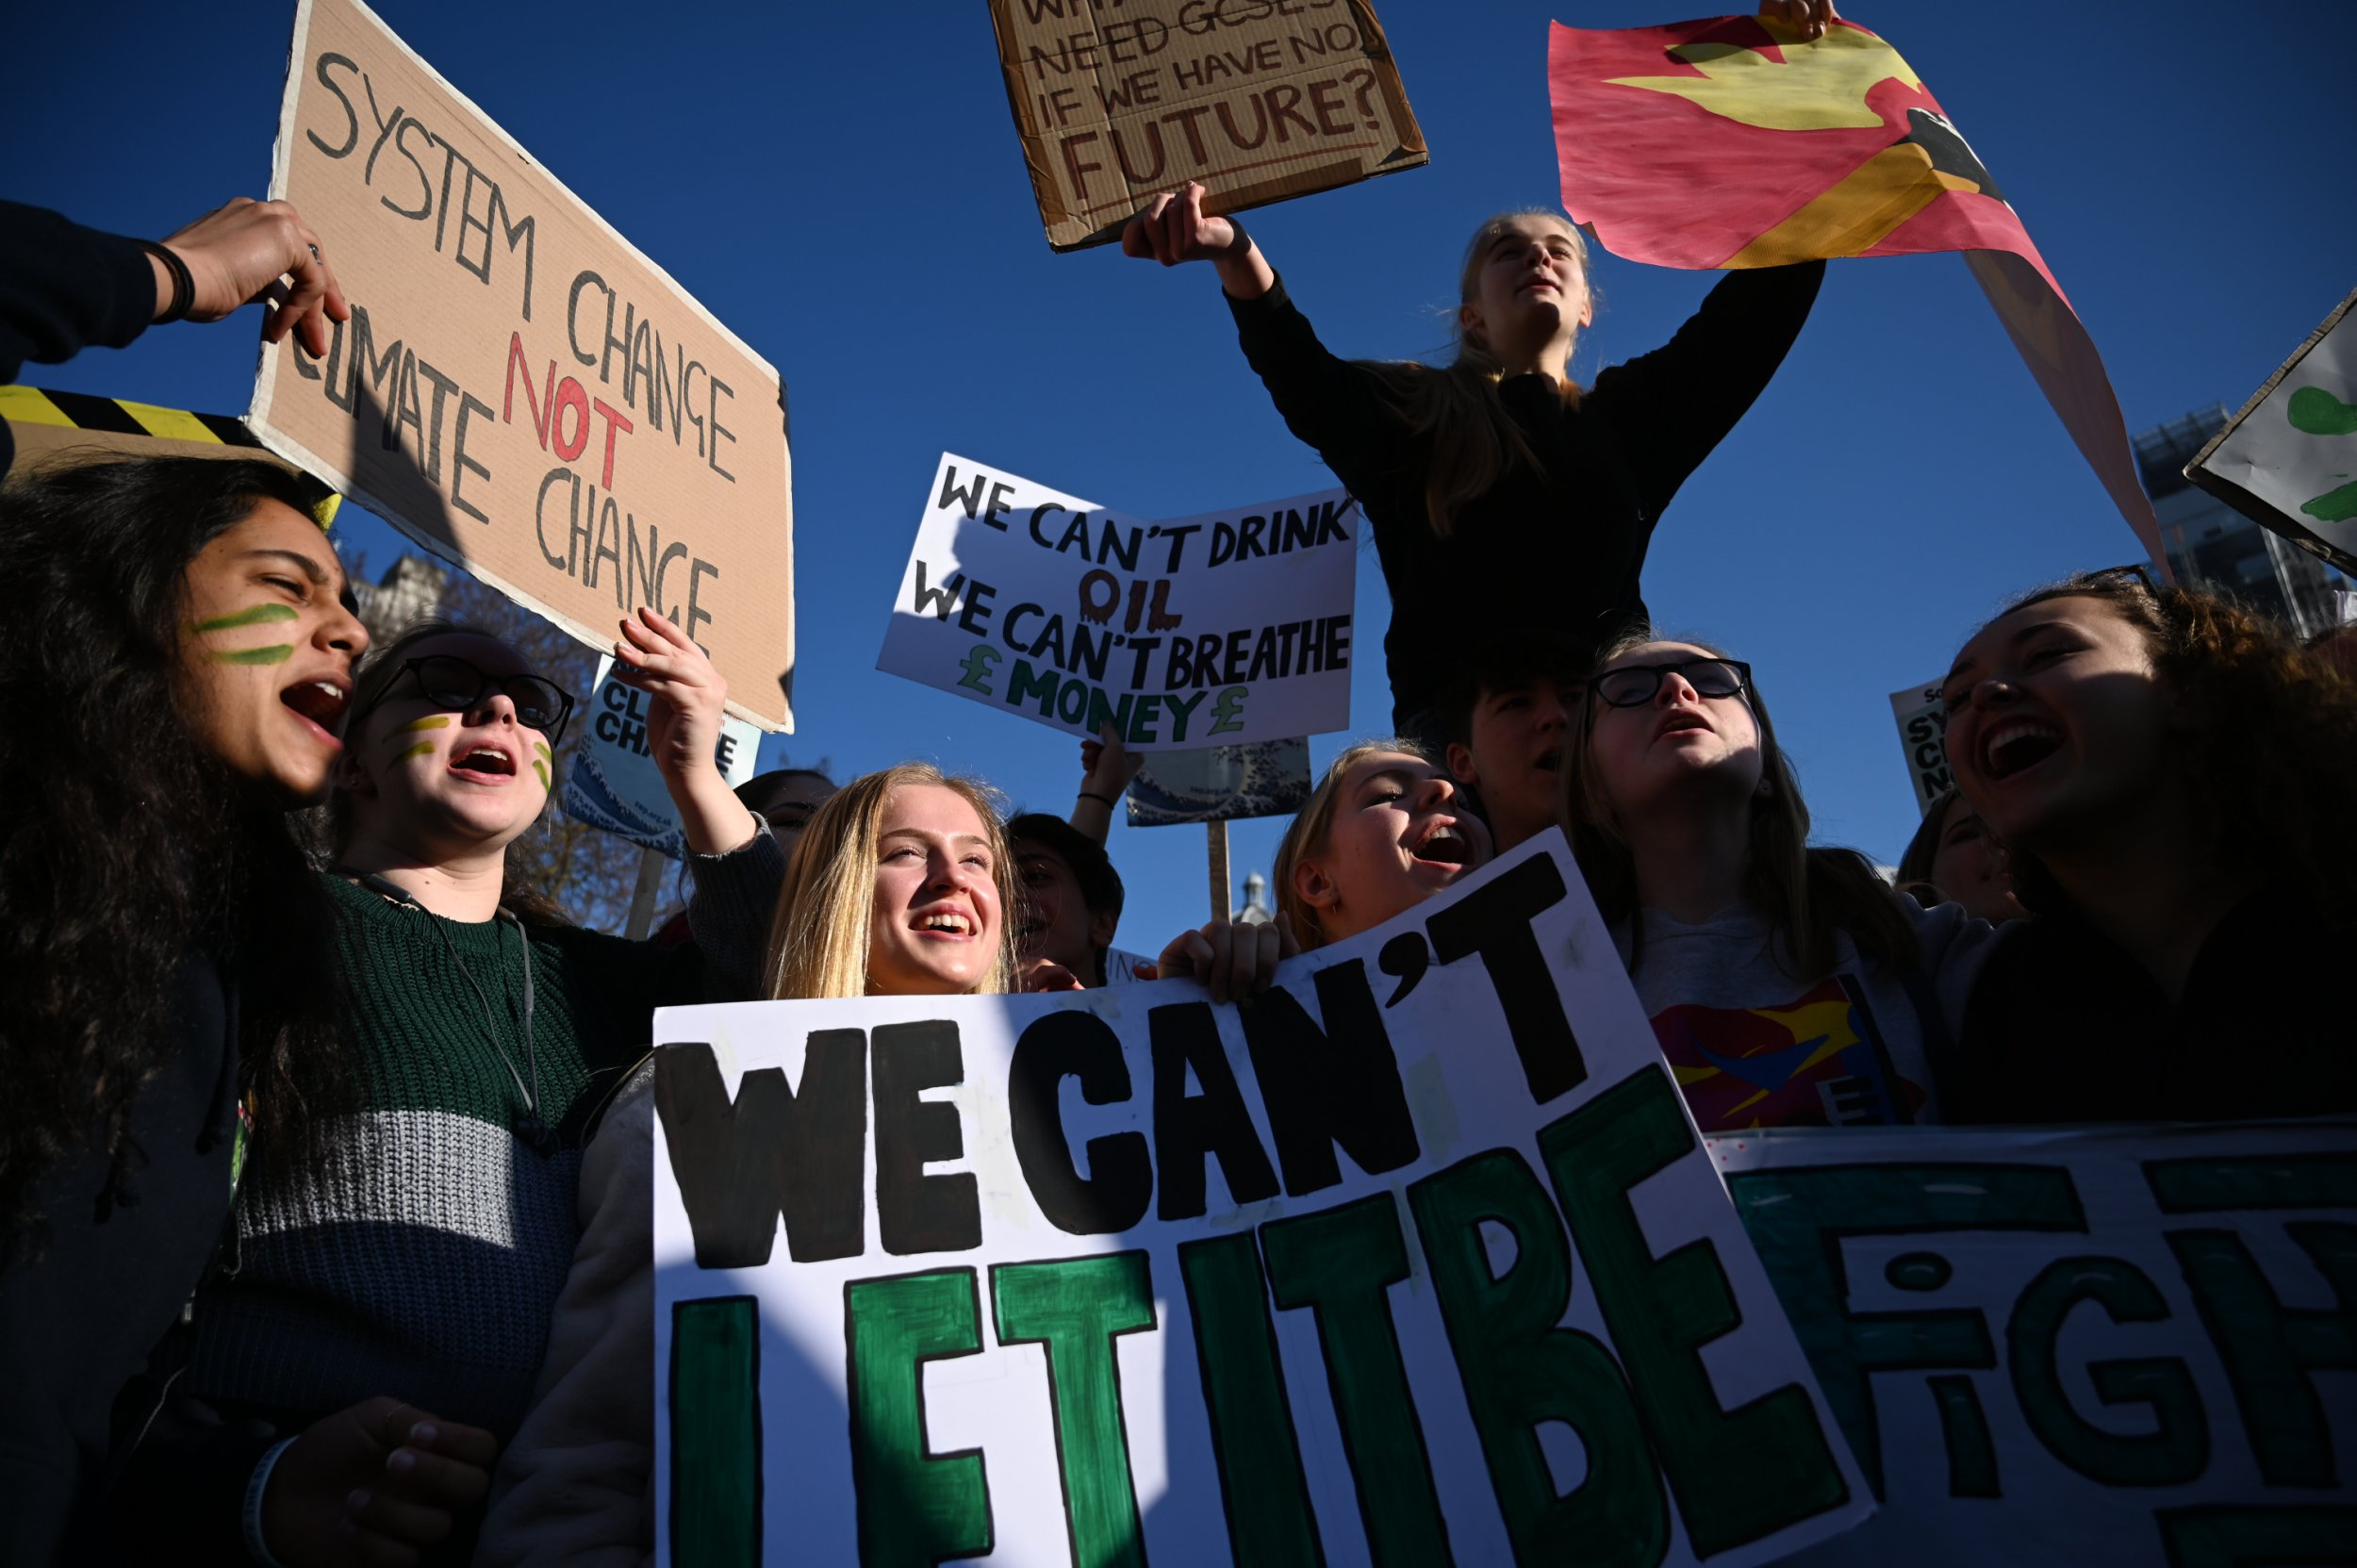 Young people are asking the questions politicians are afraid of and it's time we listened